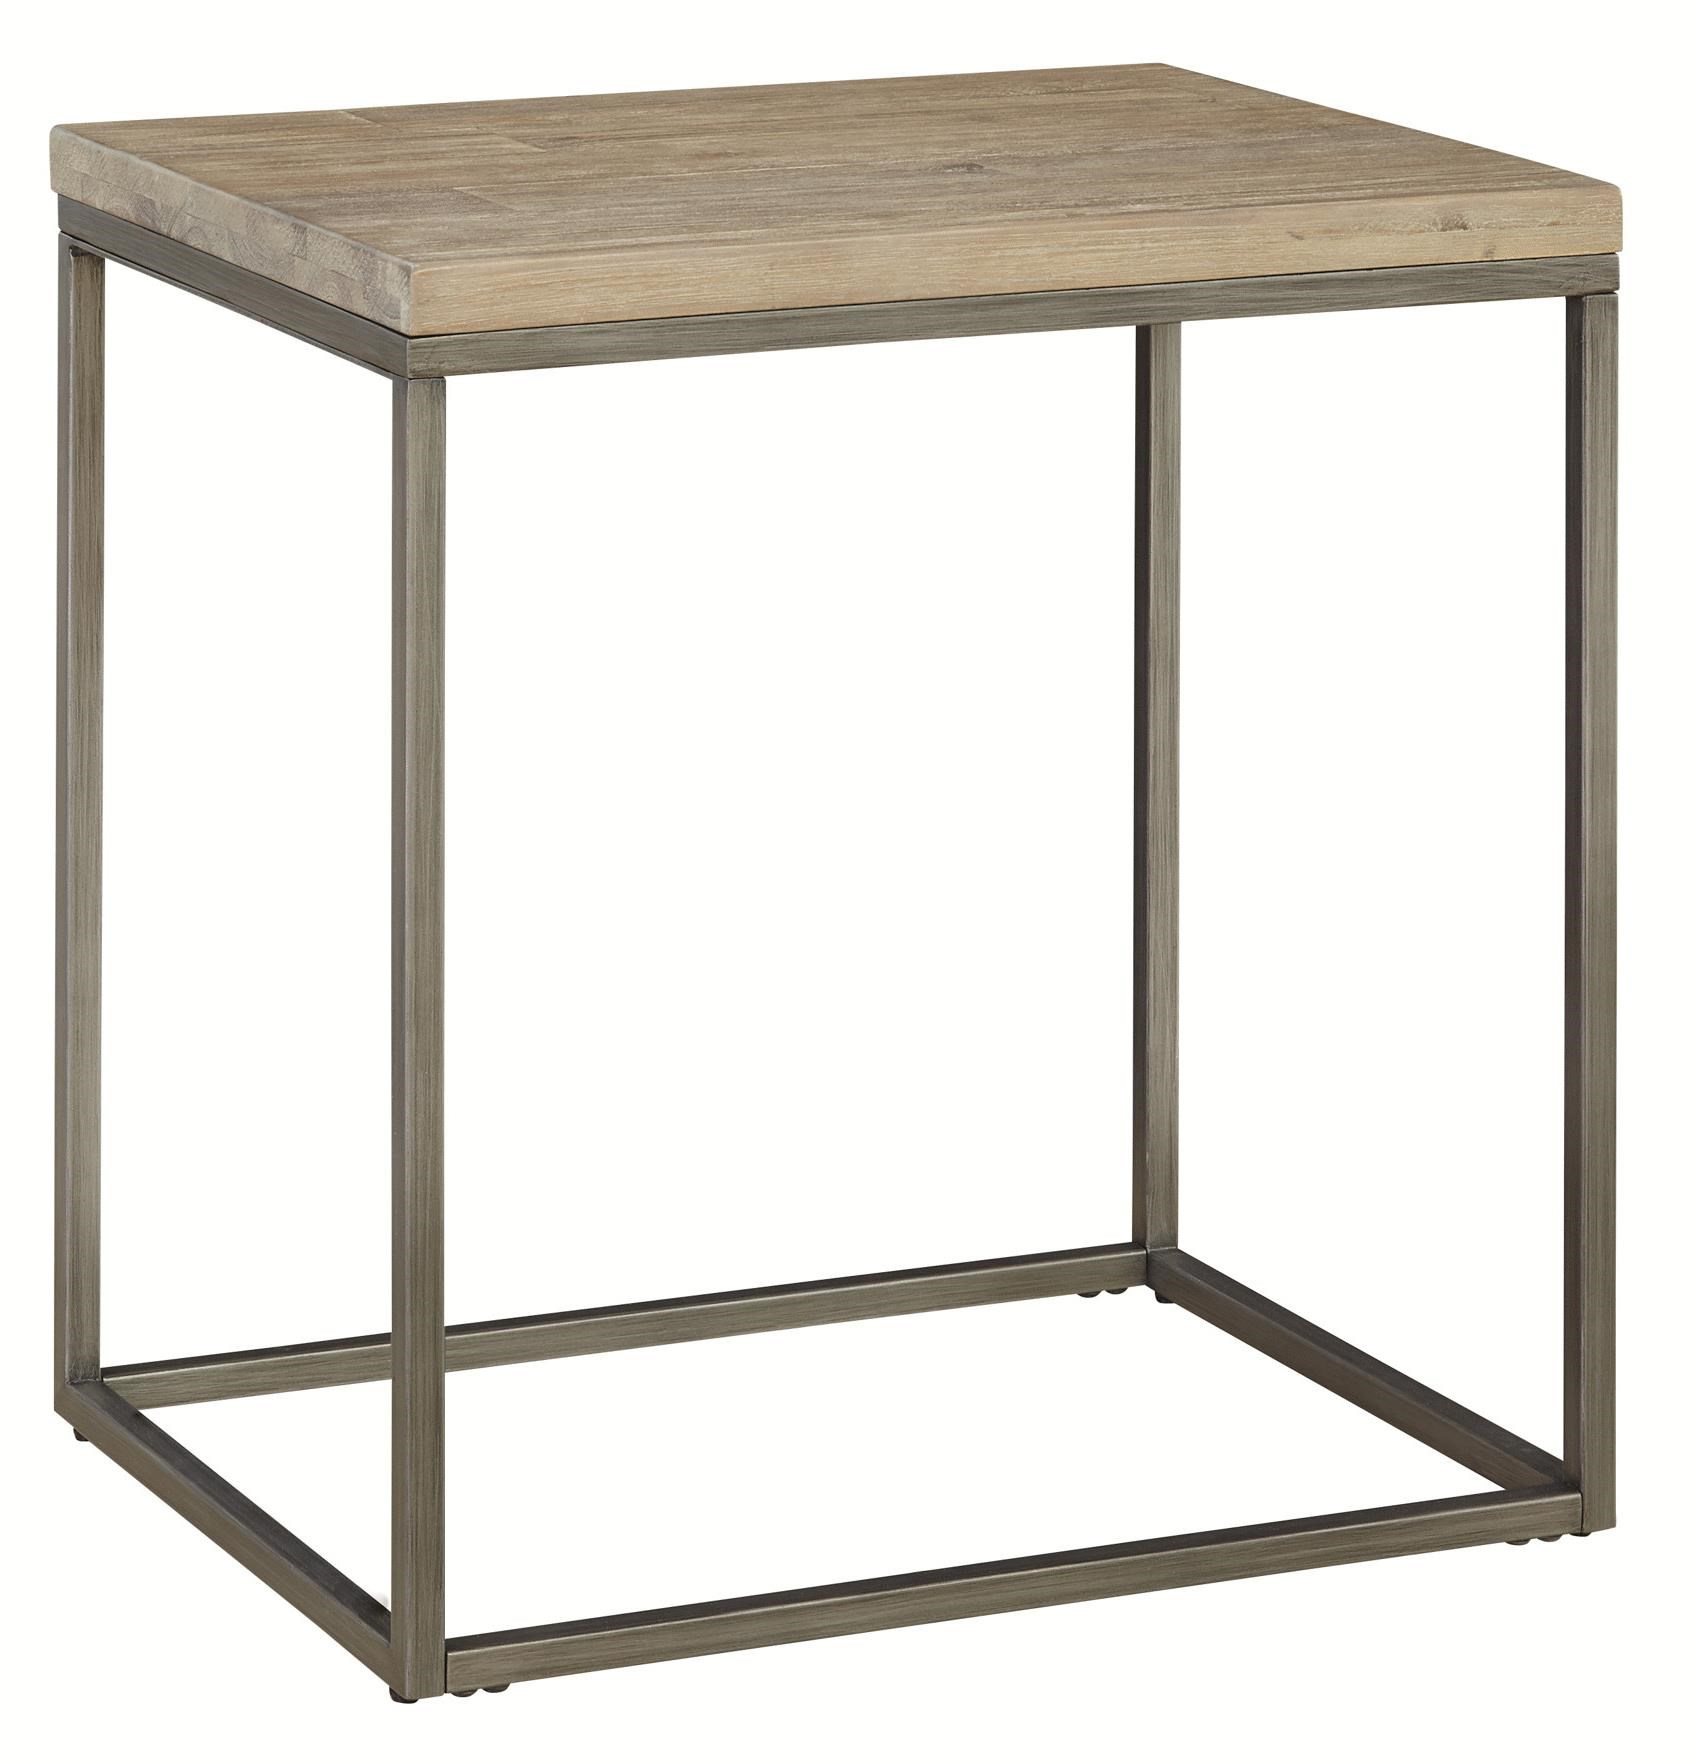 rectangle end table. Casana JulienRectangular End Table With Solid Wood Top Rectangle